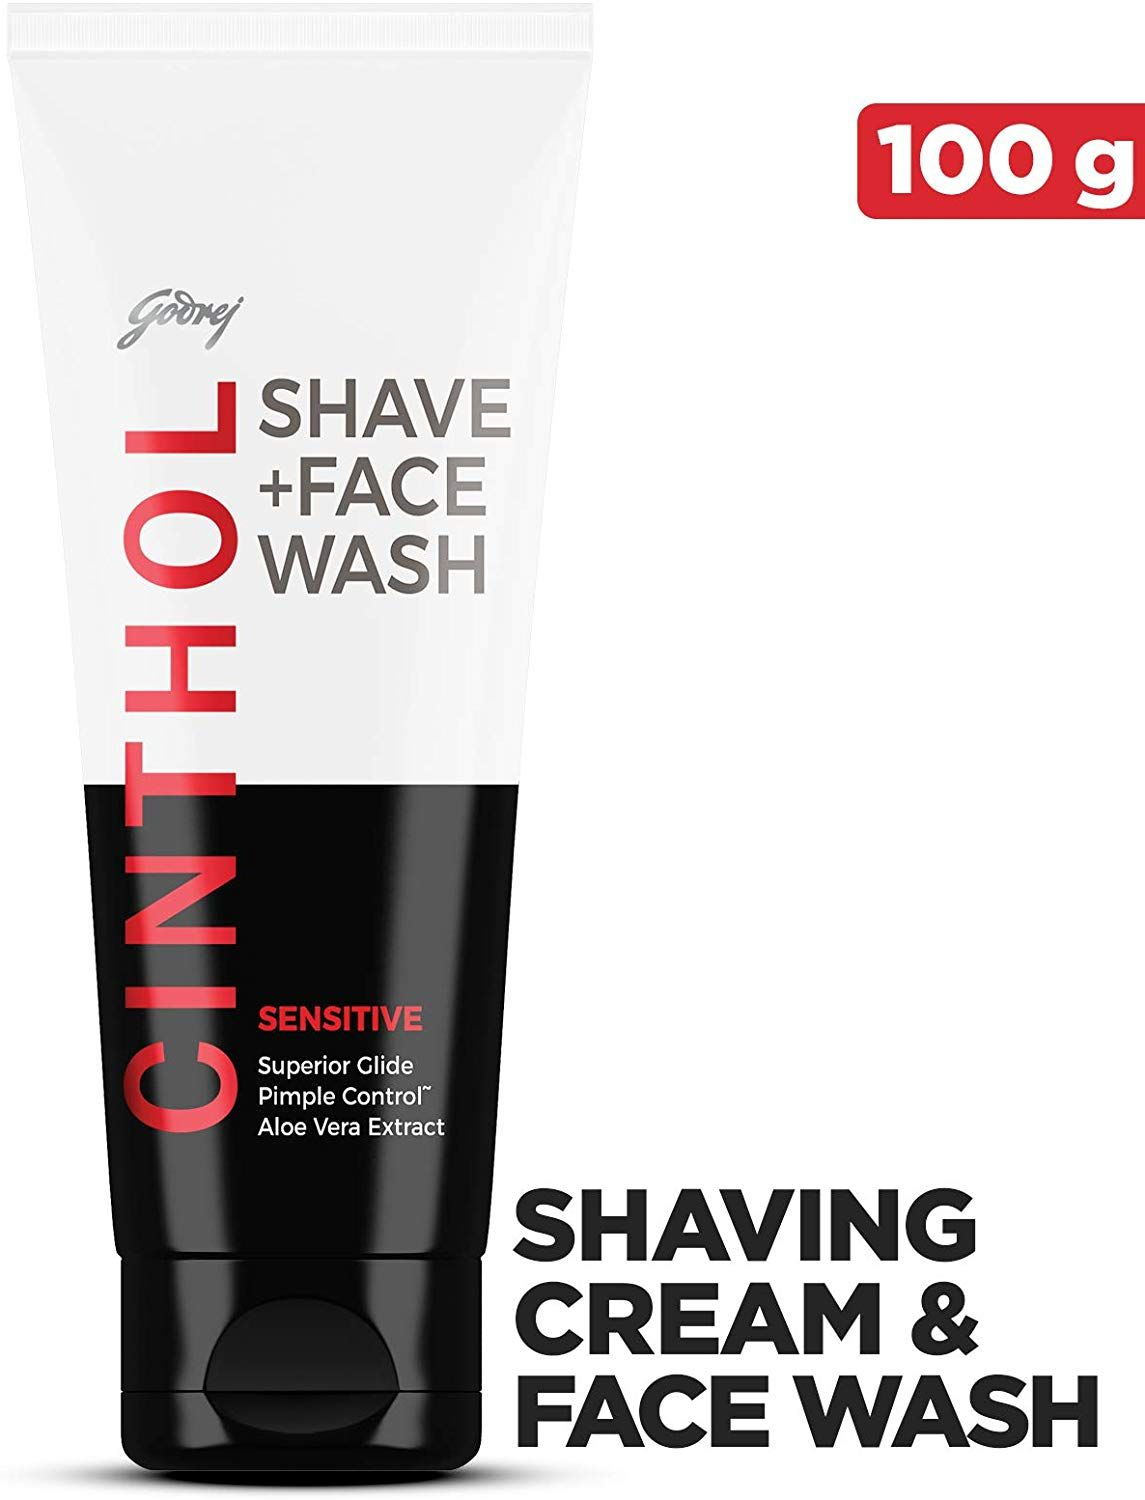 Cinthol Sensitive Shaving + Face wash 100g